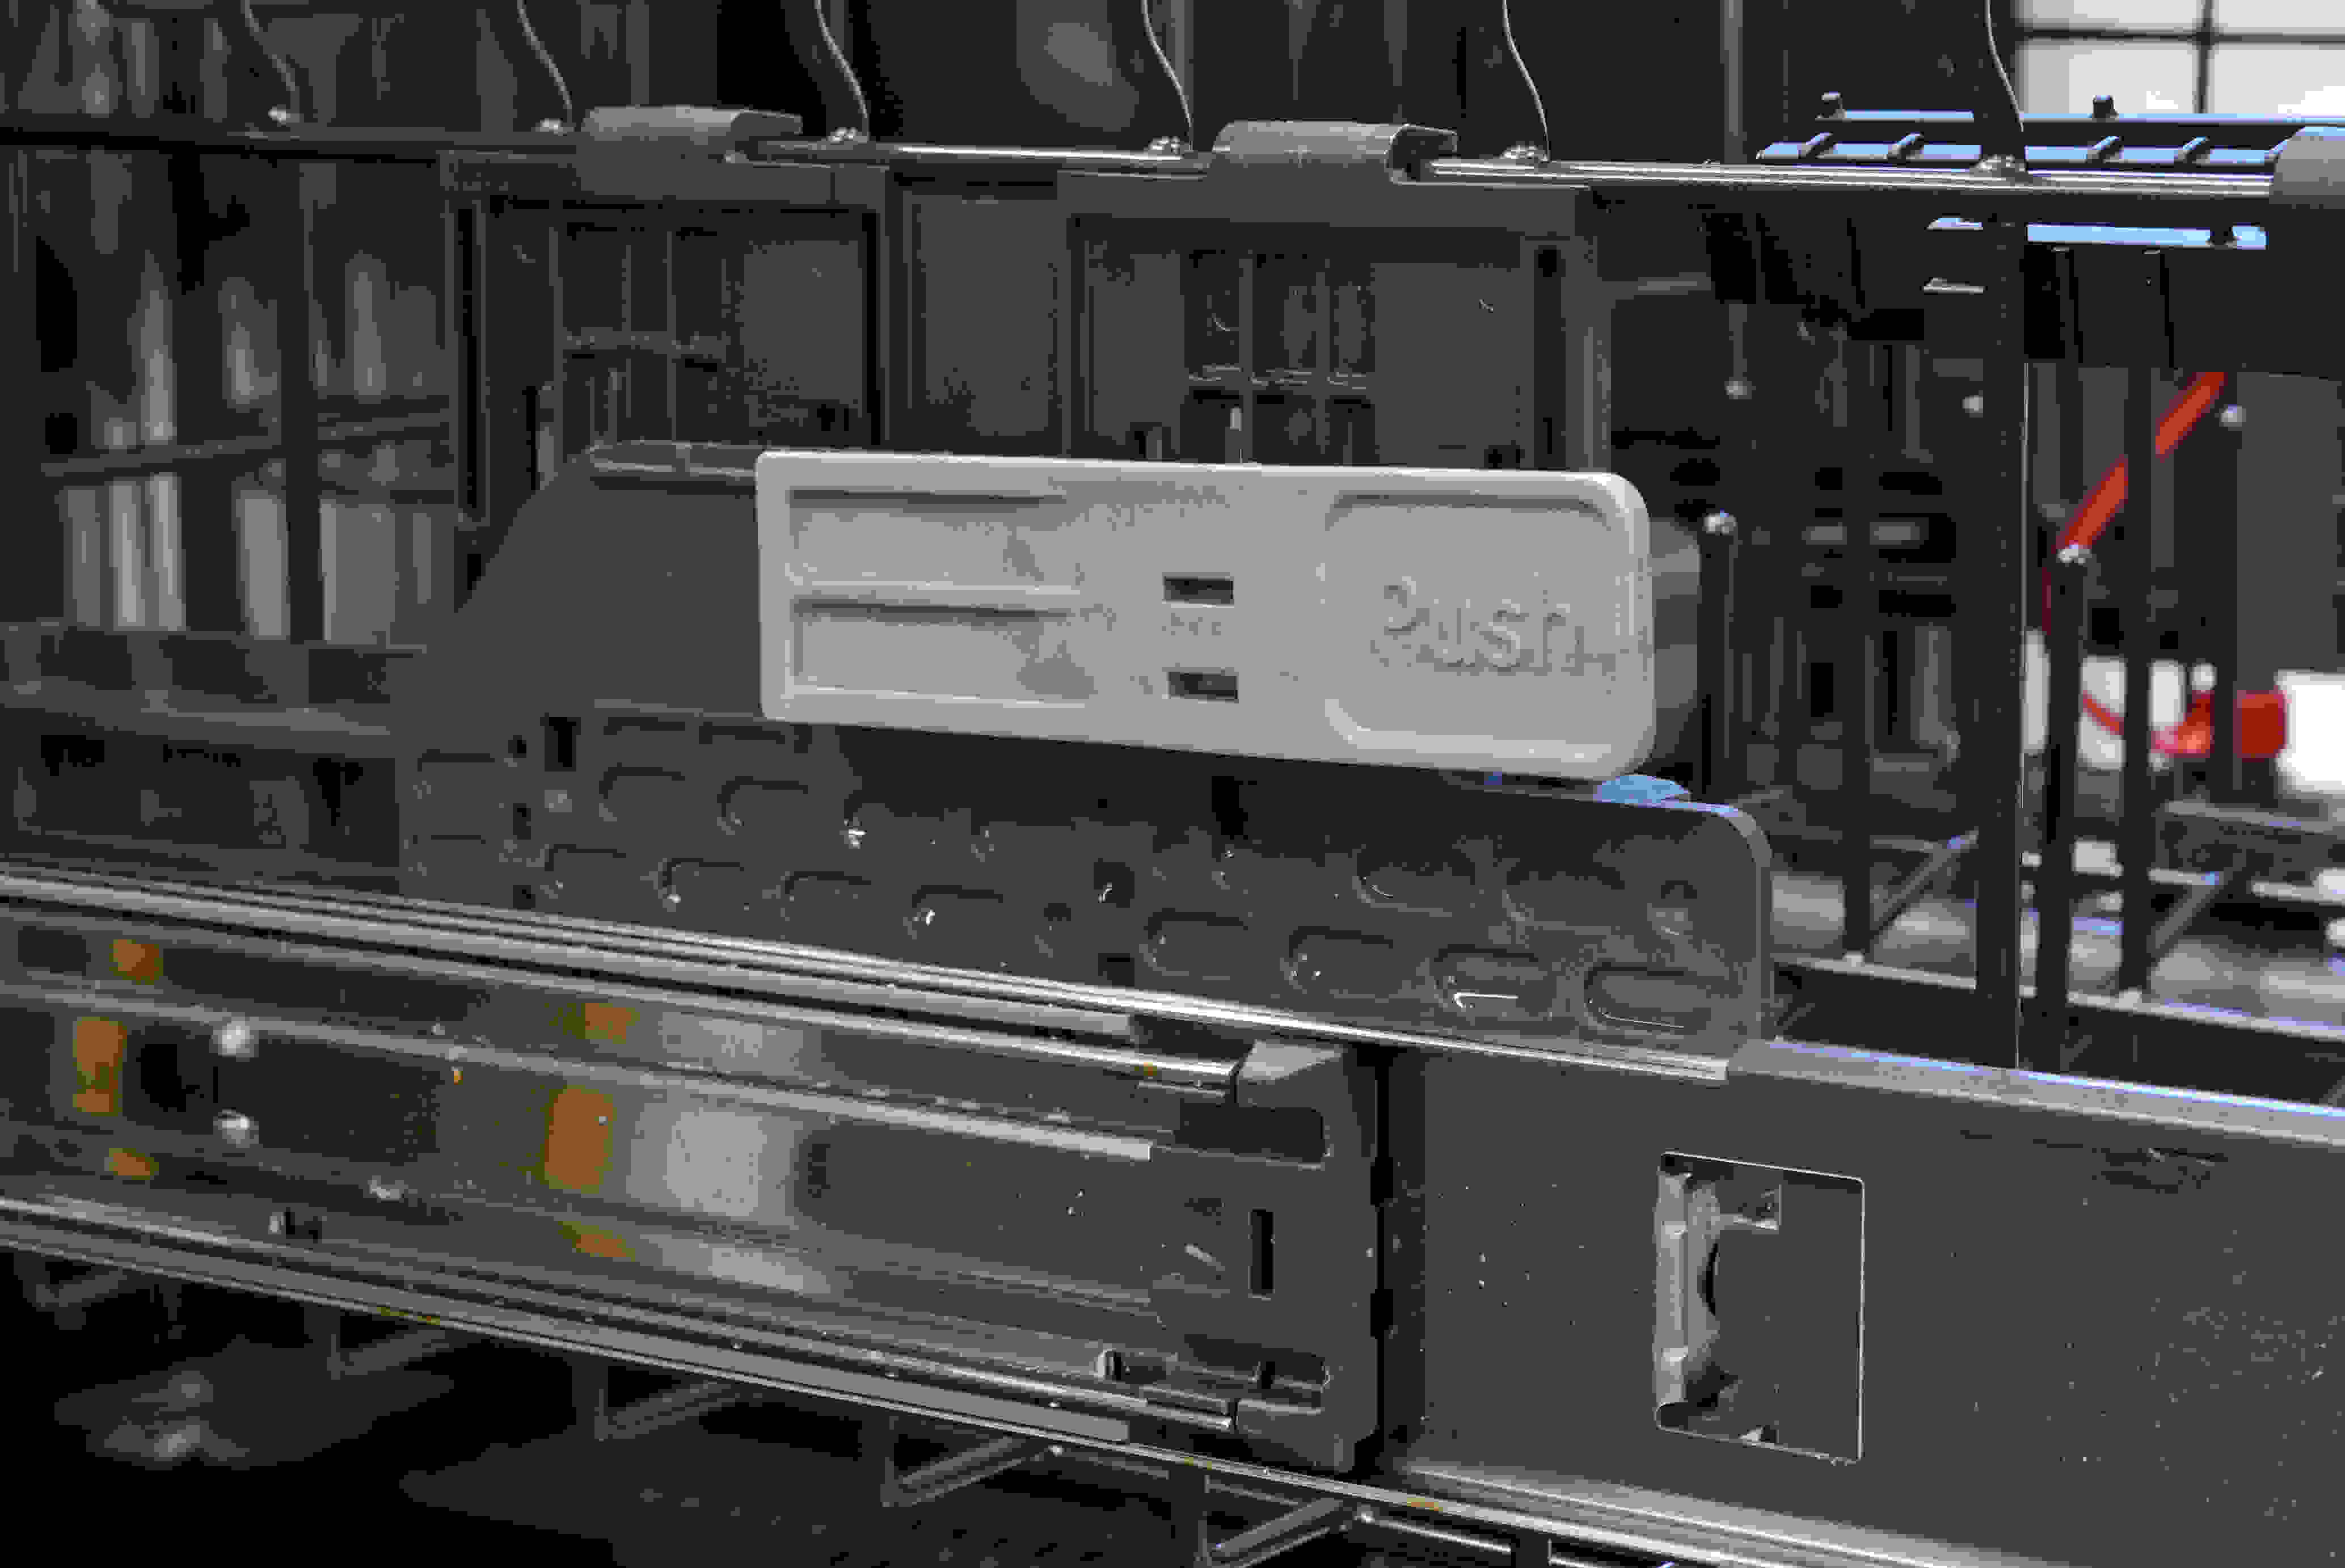 These levers are found on the side of the GE Profile PDT855S's upper rack, and allow you to adjust its height.